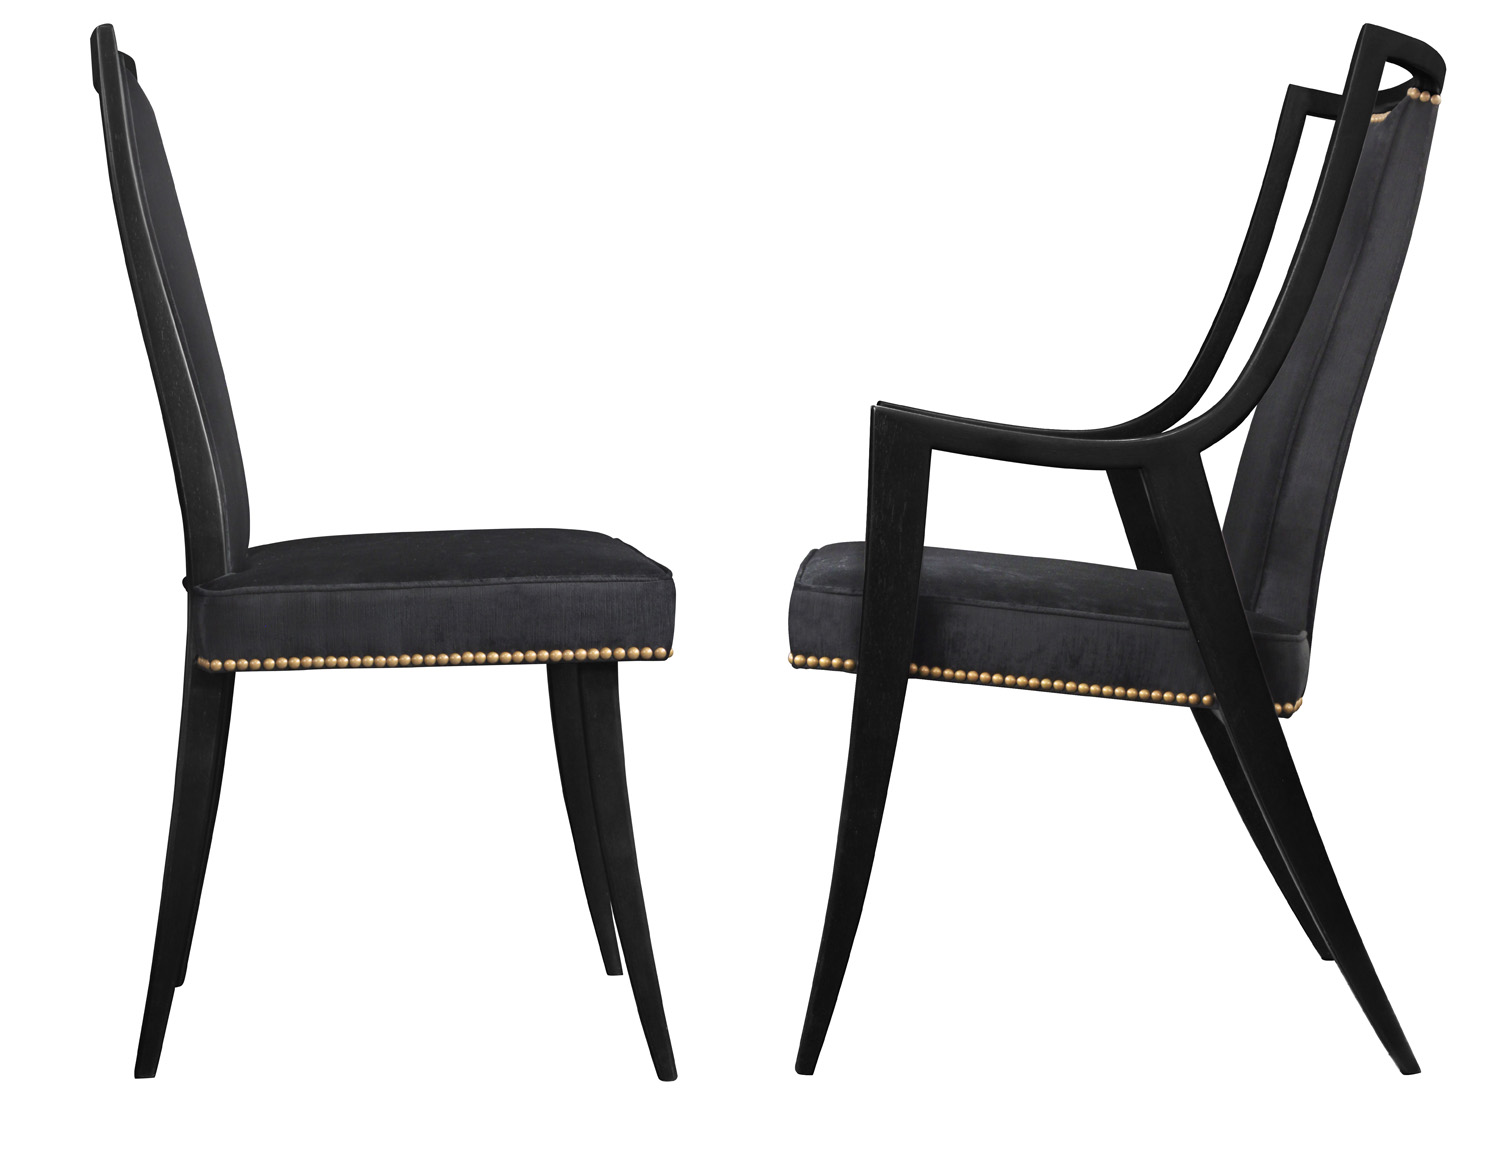 Probber 180 set 8 Classic 2 arms diningchairs150 detail4 hires.jpg